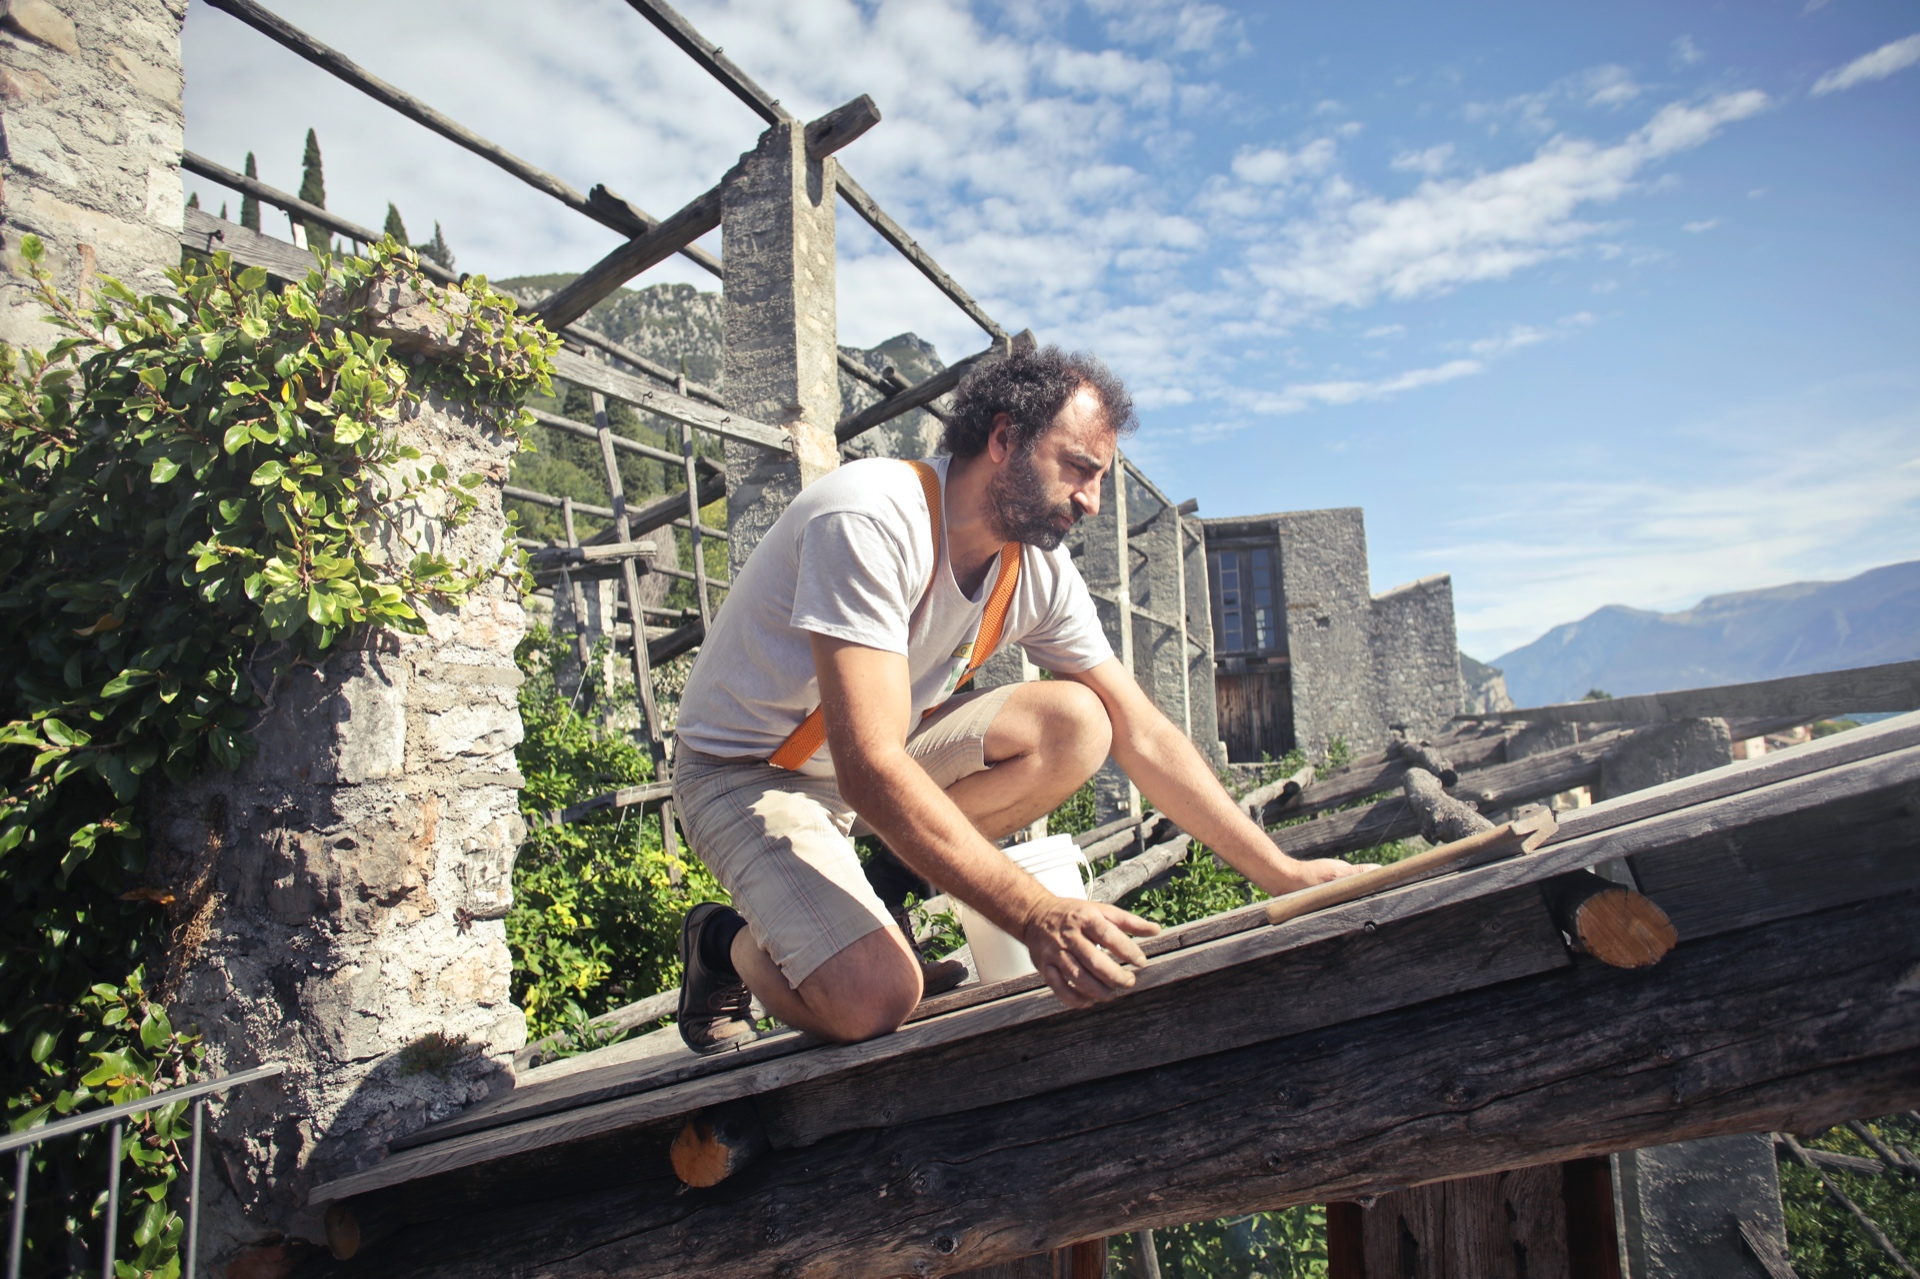 focused-man-building-roof-of-wooden-construction-3771111